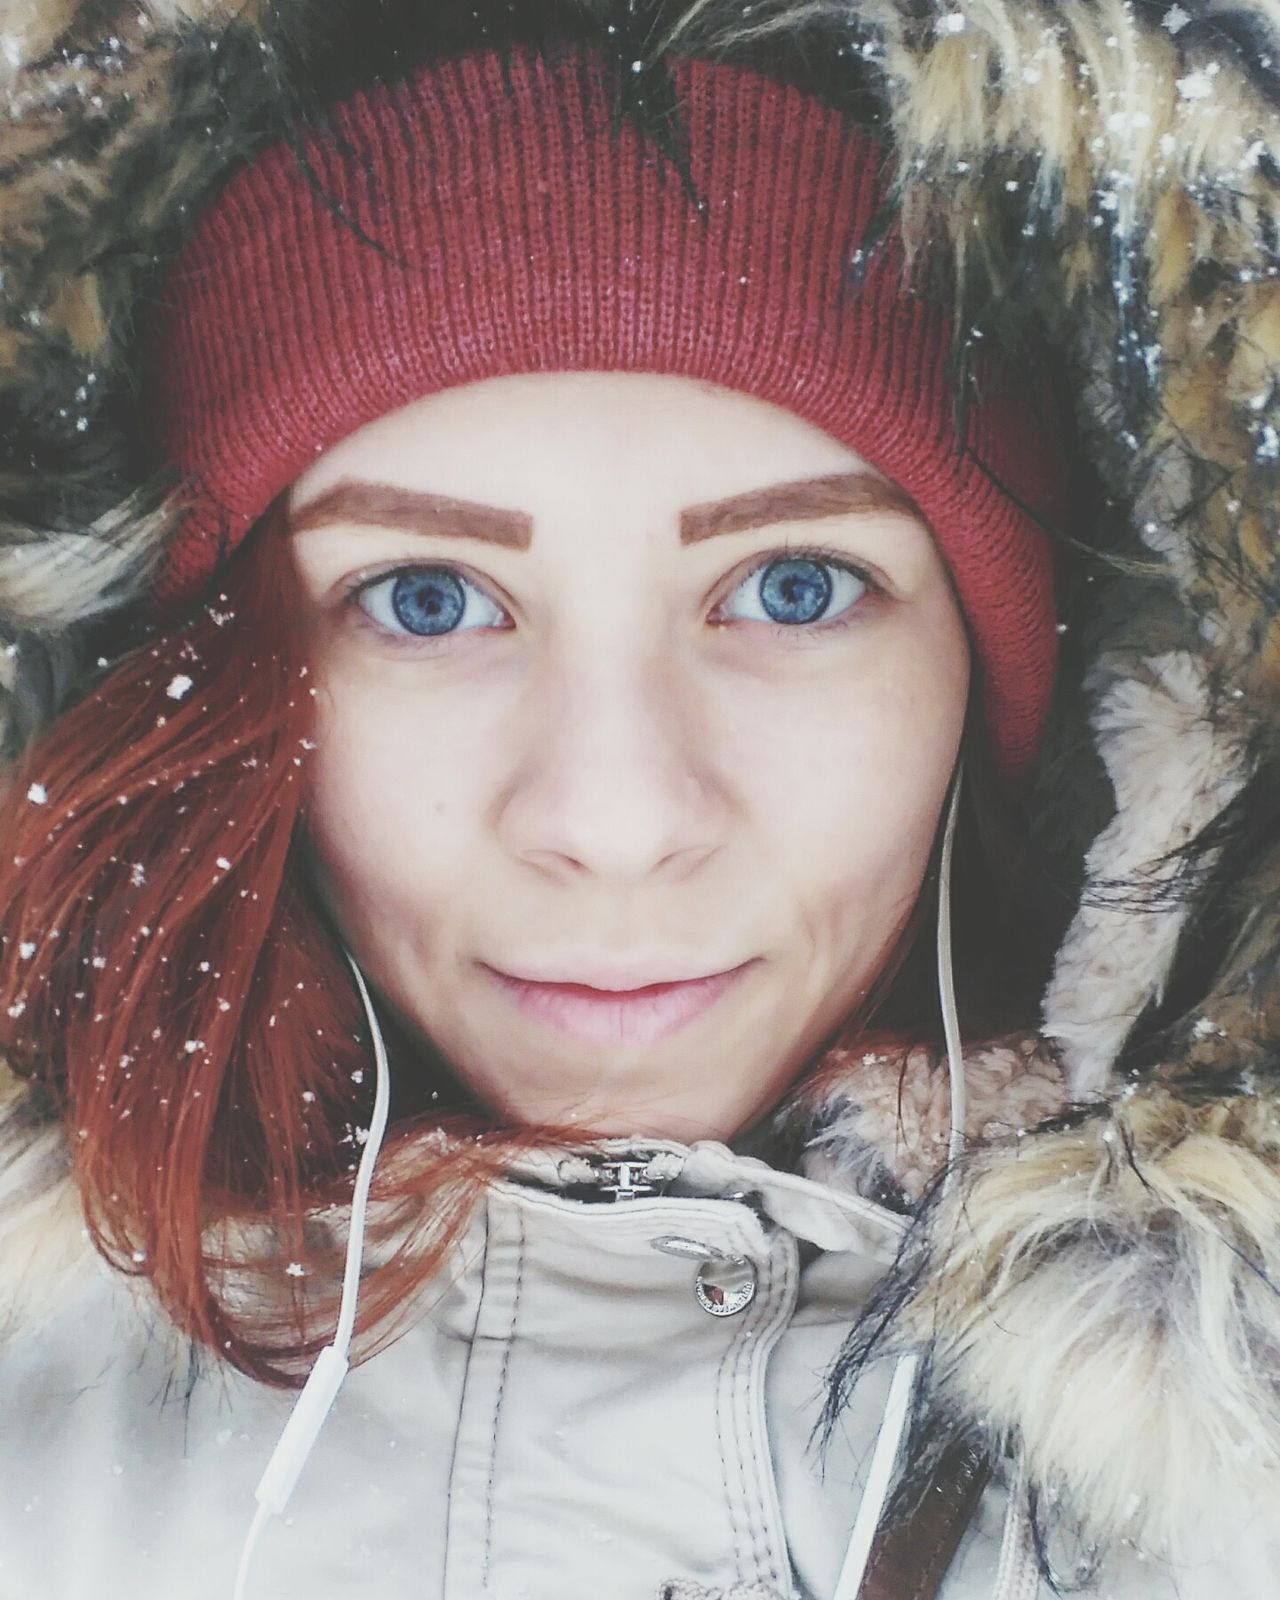 girlautumn winter blue eyes first snow happy smile with love just me Portrait Looking At Camera Front View Young Women Young Adult One Person Close-up Outdoors Winter Headshot Leisure Activity Day Beautiful Woman One Young Woman Only Warm Clothing Adult Adults Only People